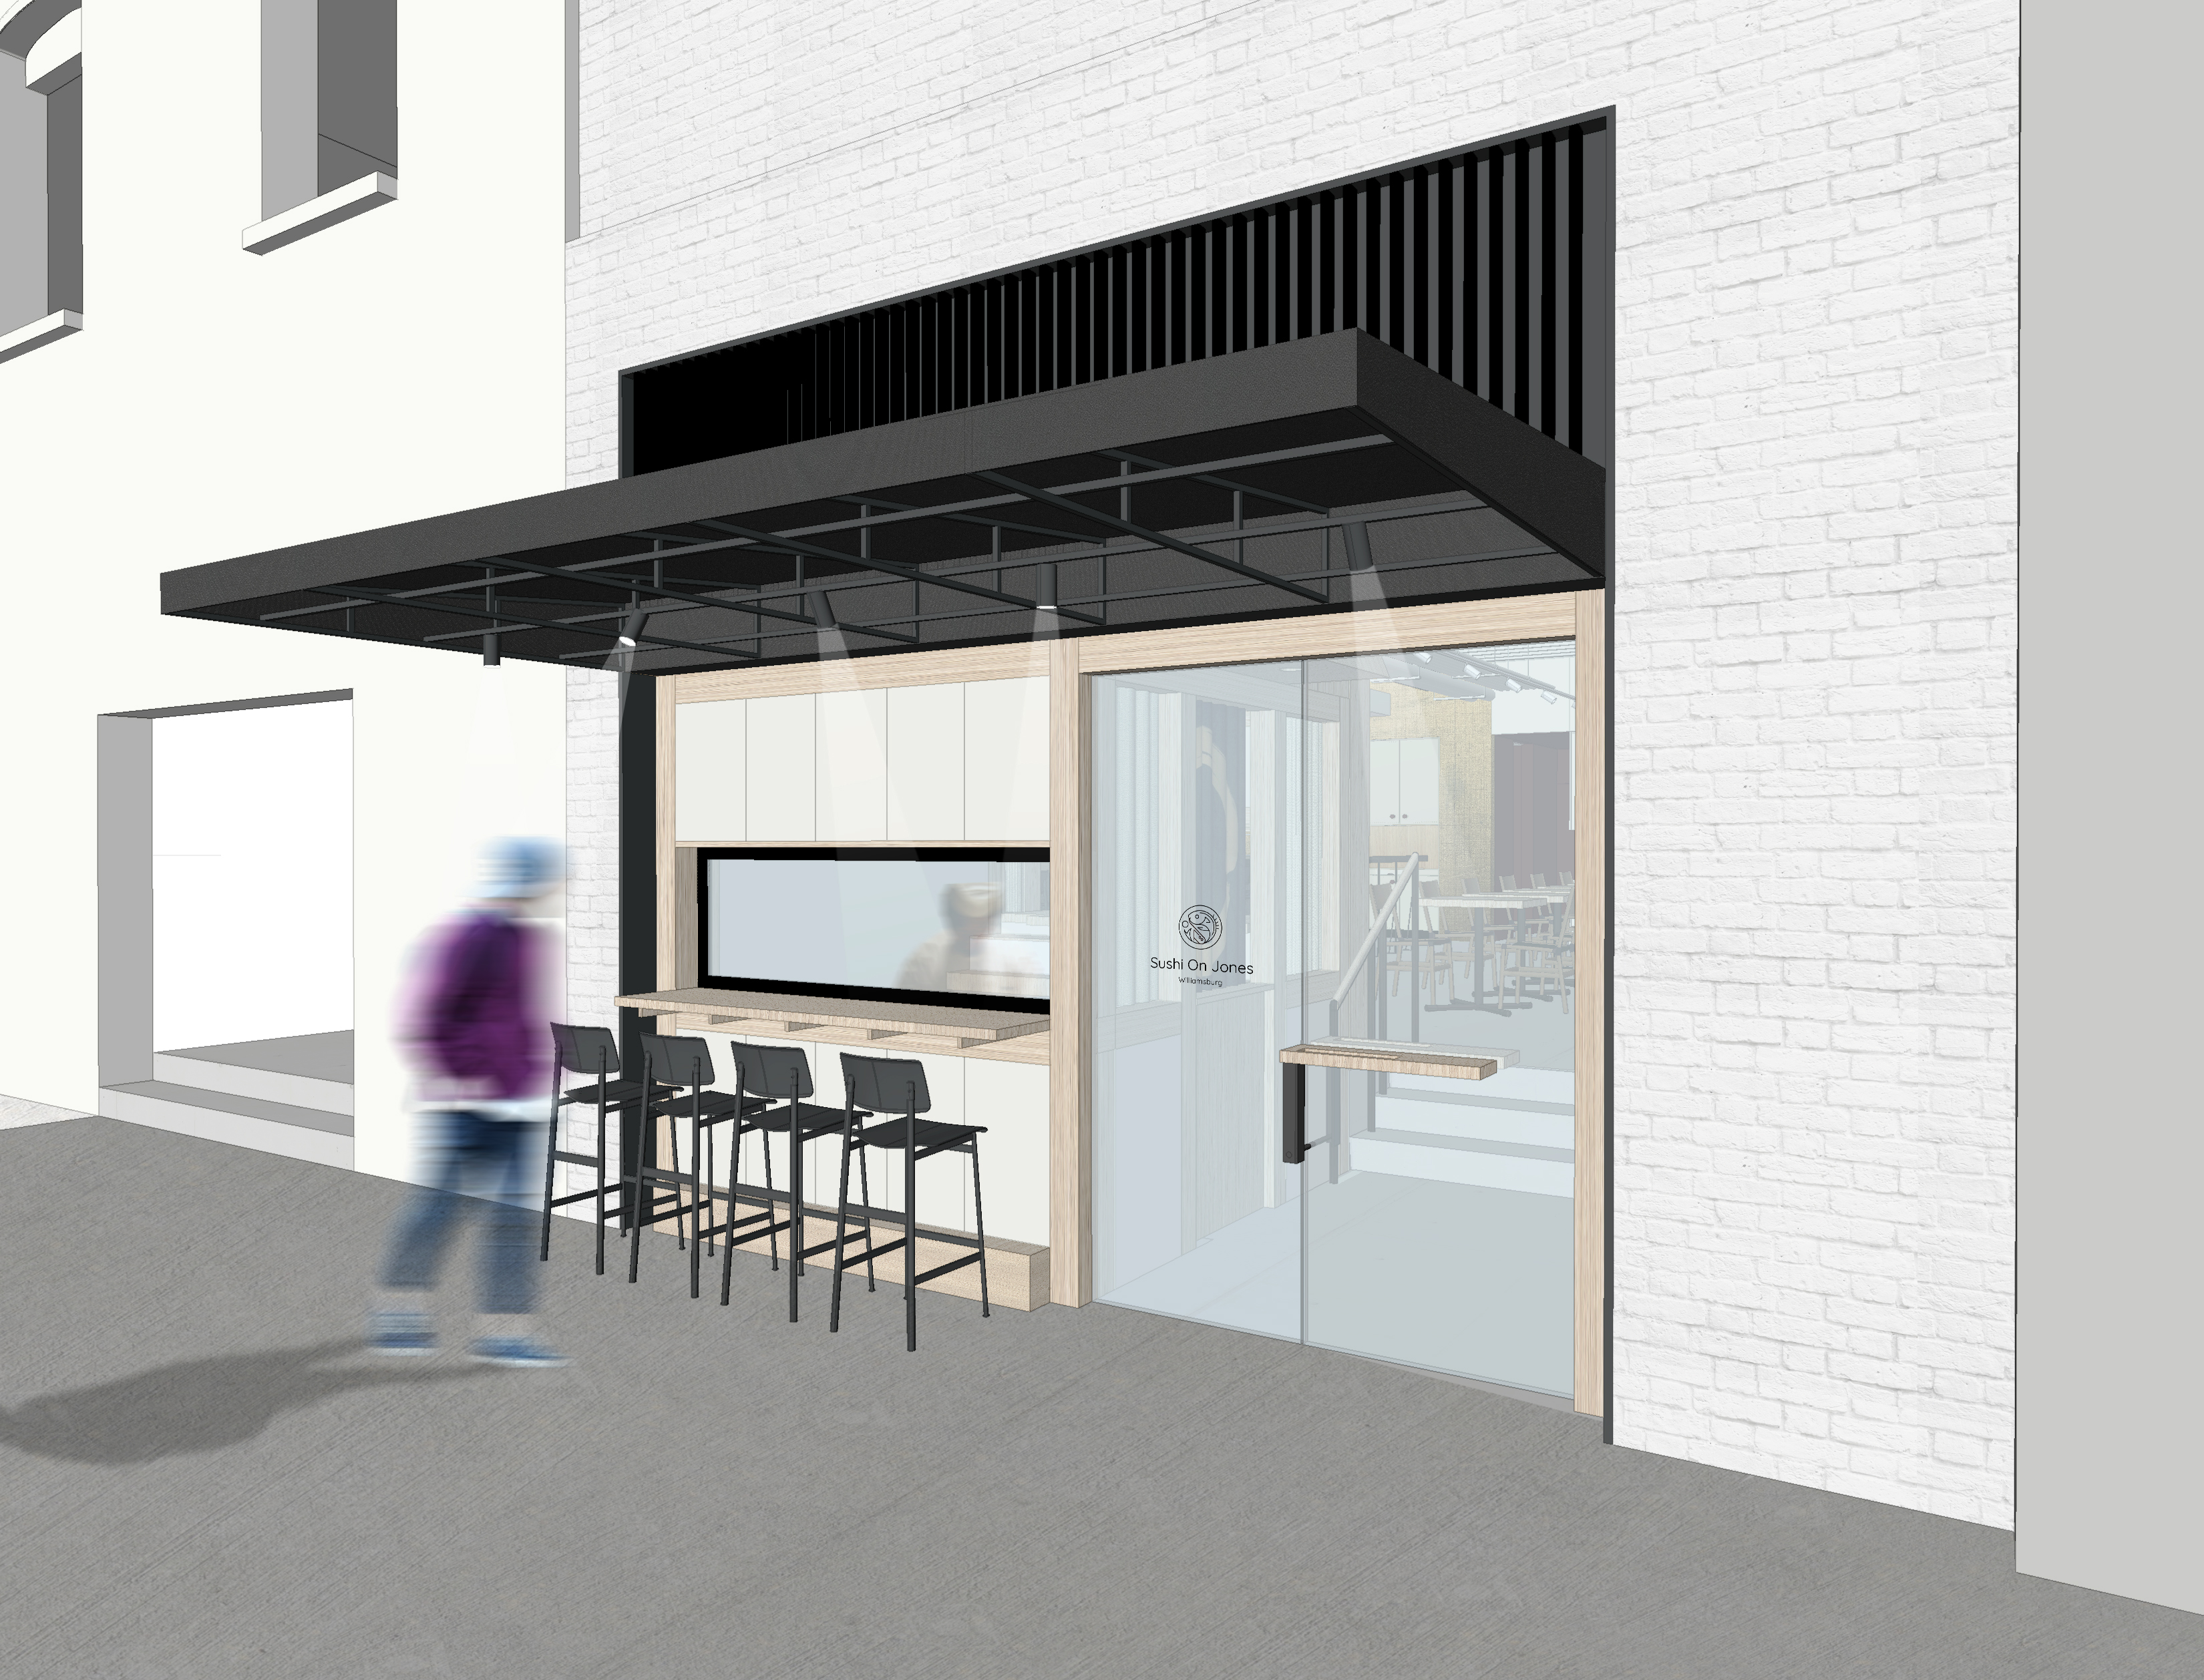 Timed Omakase Hit Sushi on Jones Expands With a Japanese Restaurant in Williamsburg